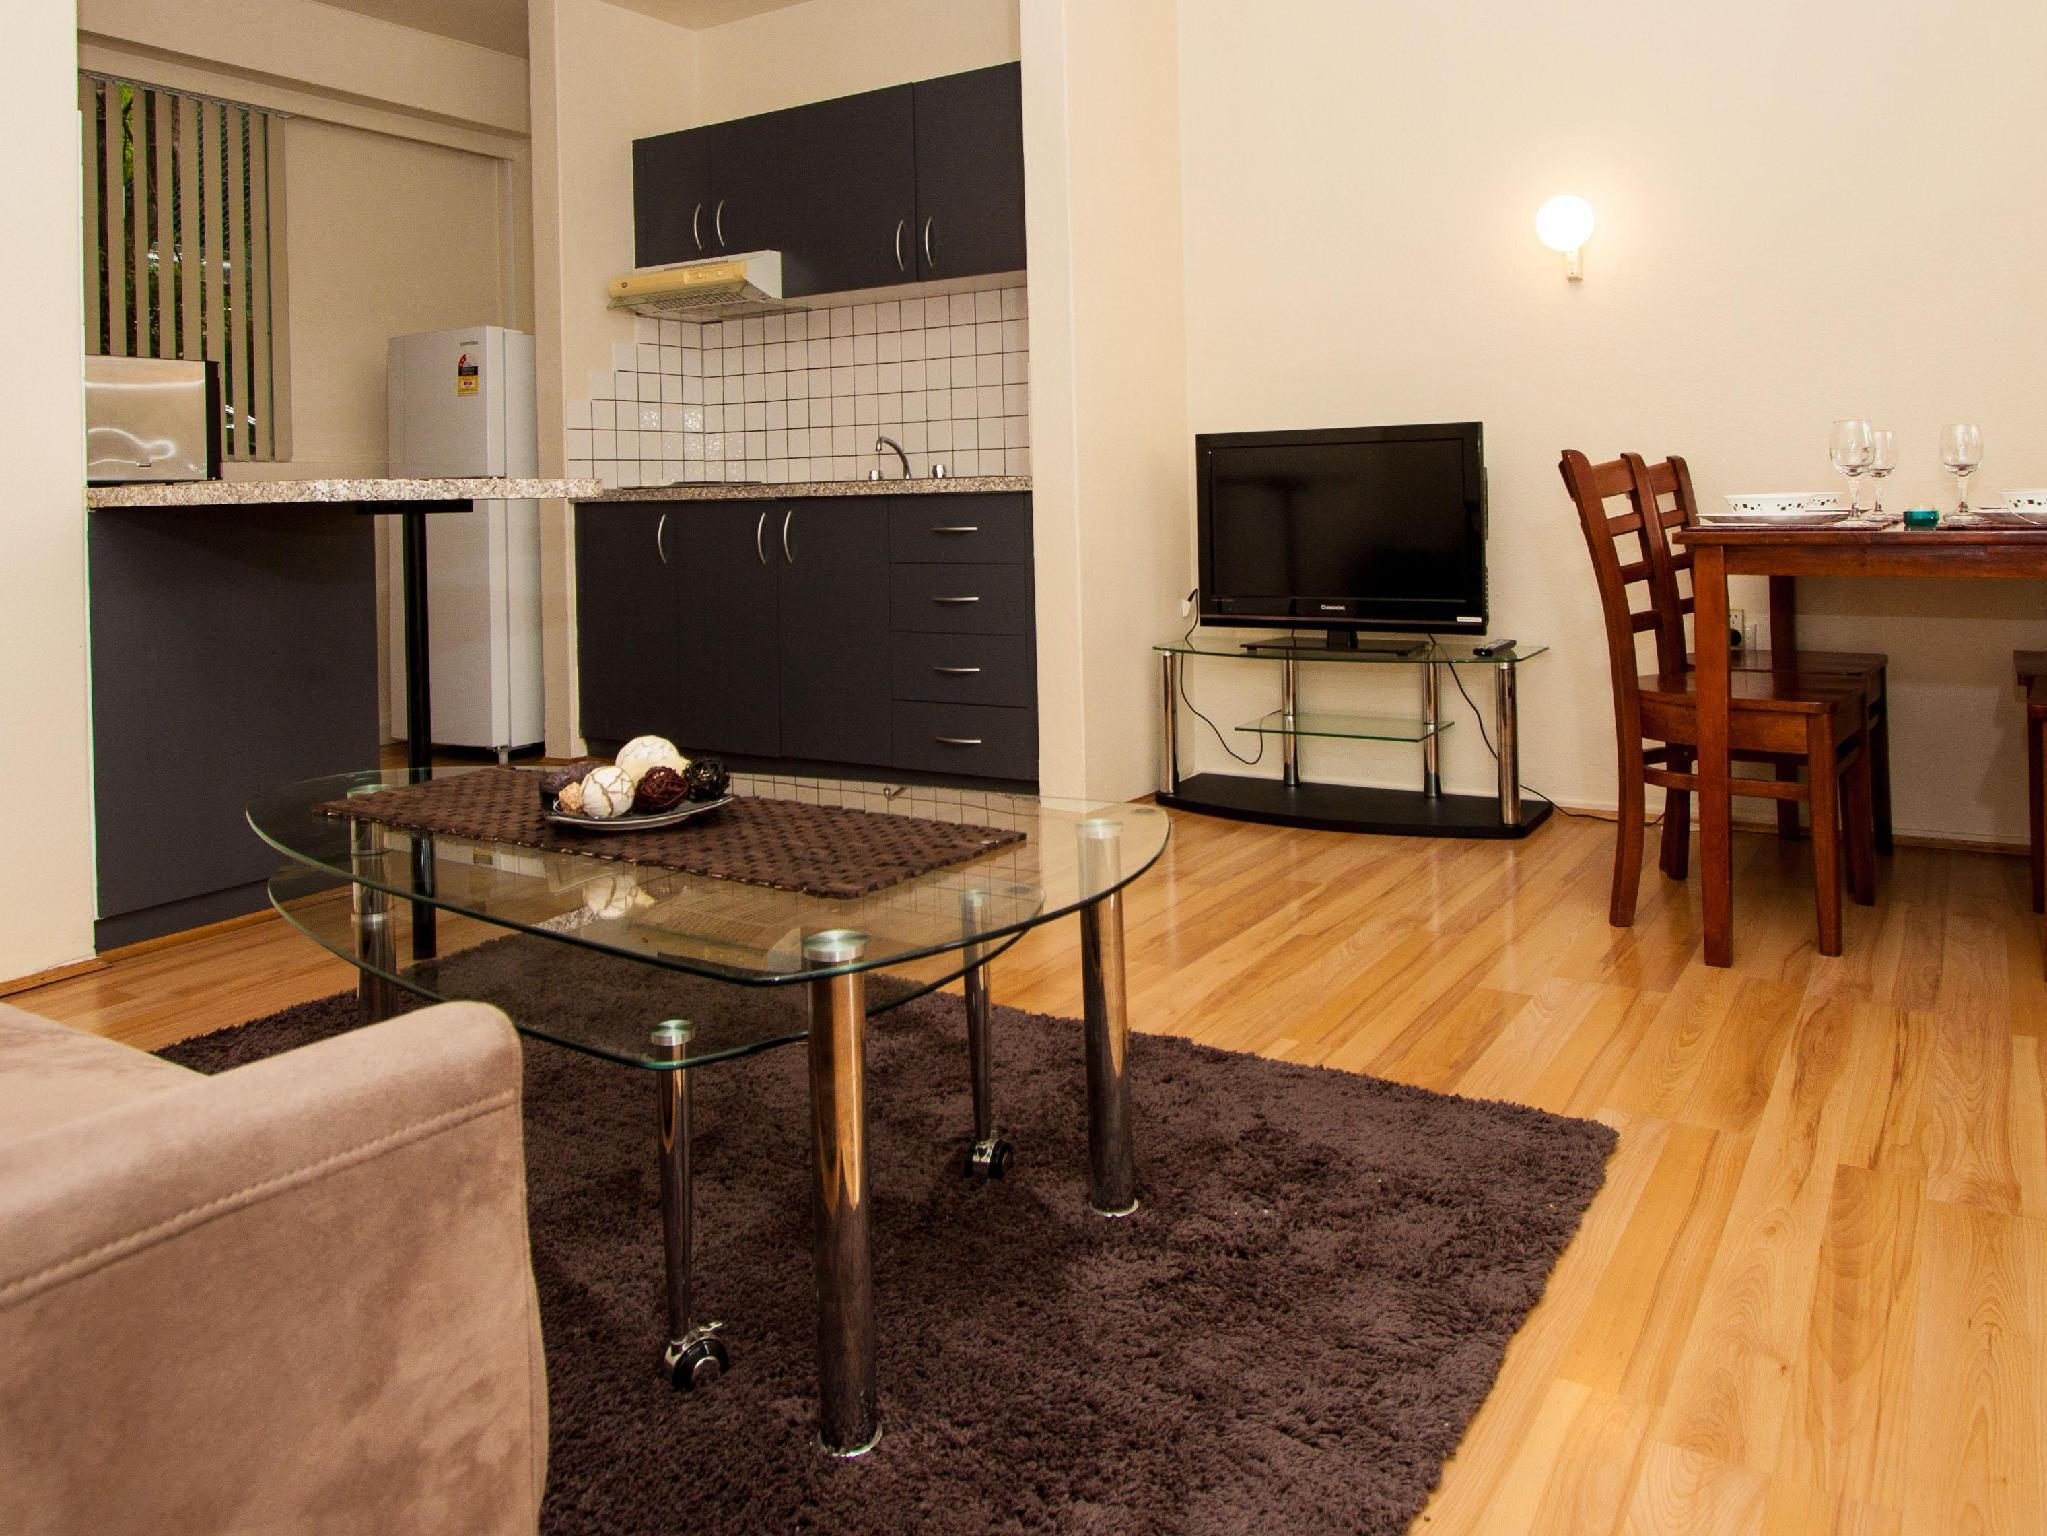 Leilighet 1 soverom (4 voksne) (1 Bedroom Apartment (4 Adults))